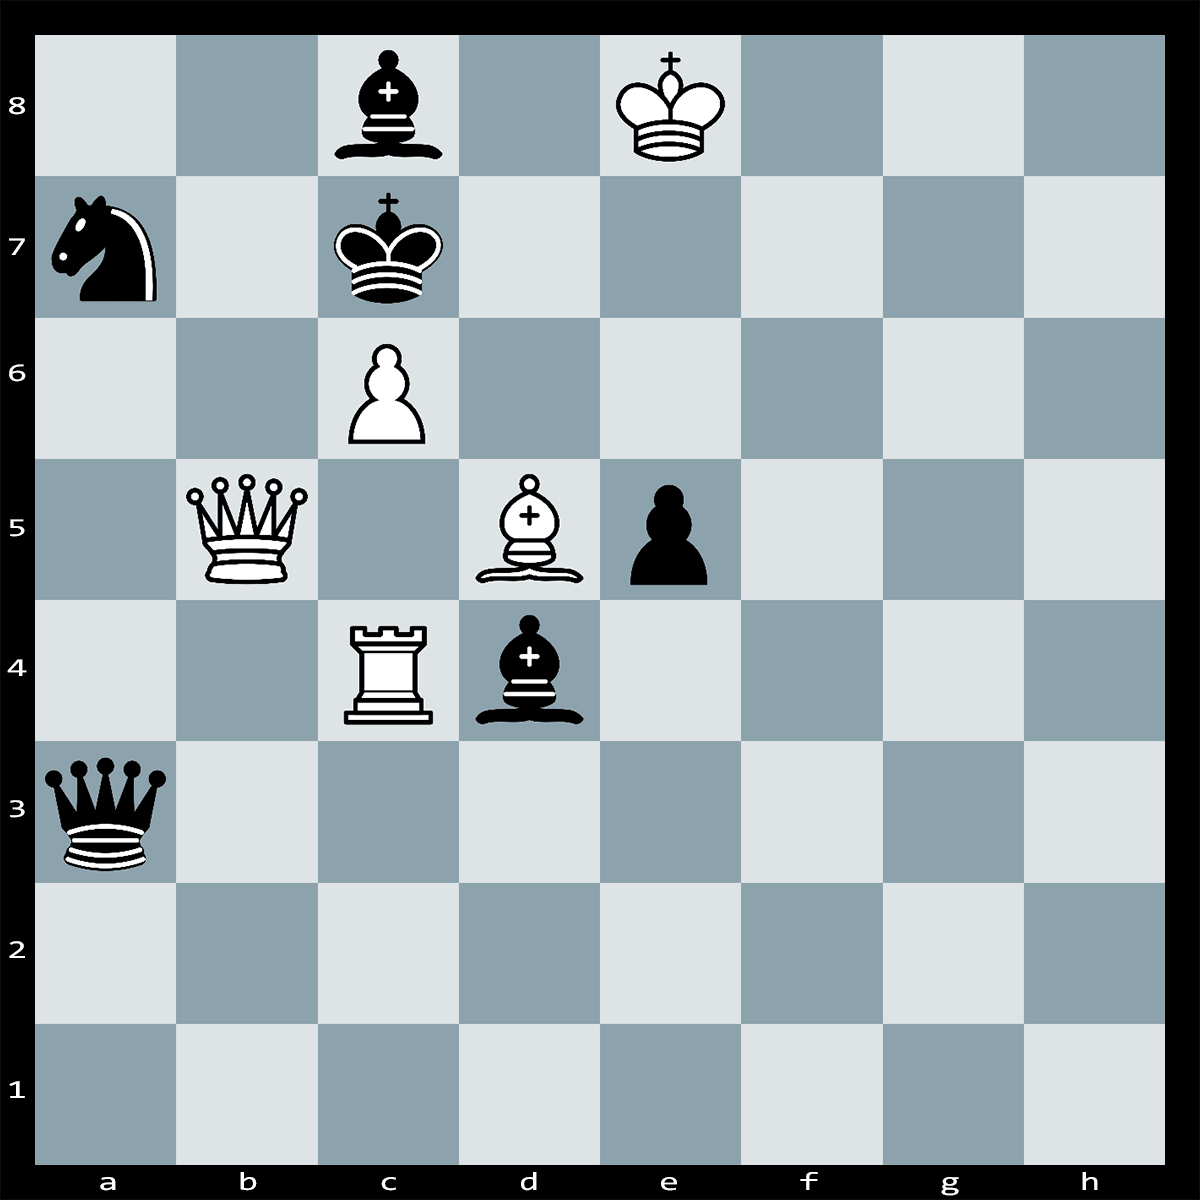 Mate in 2 Moves, White to Play - Chess Puzzle #33